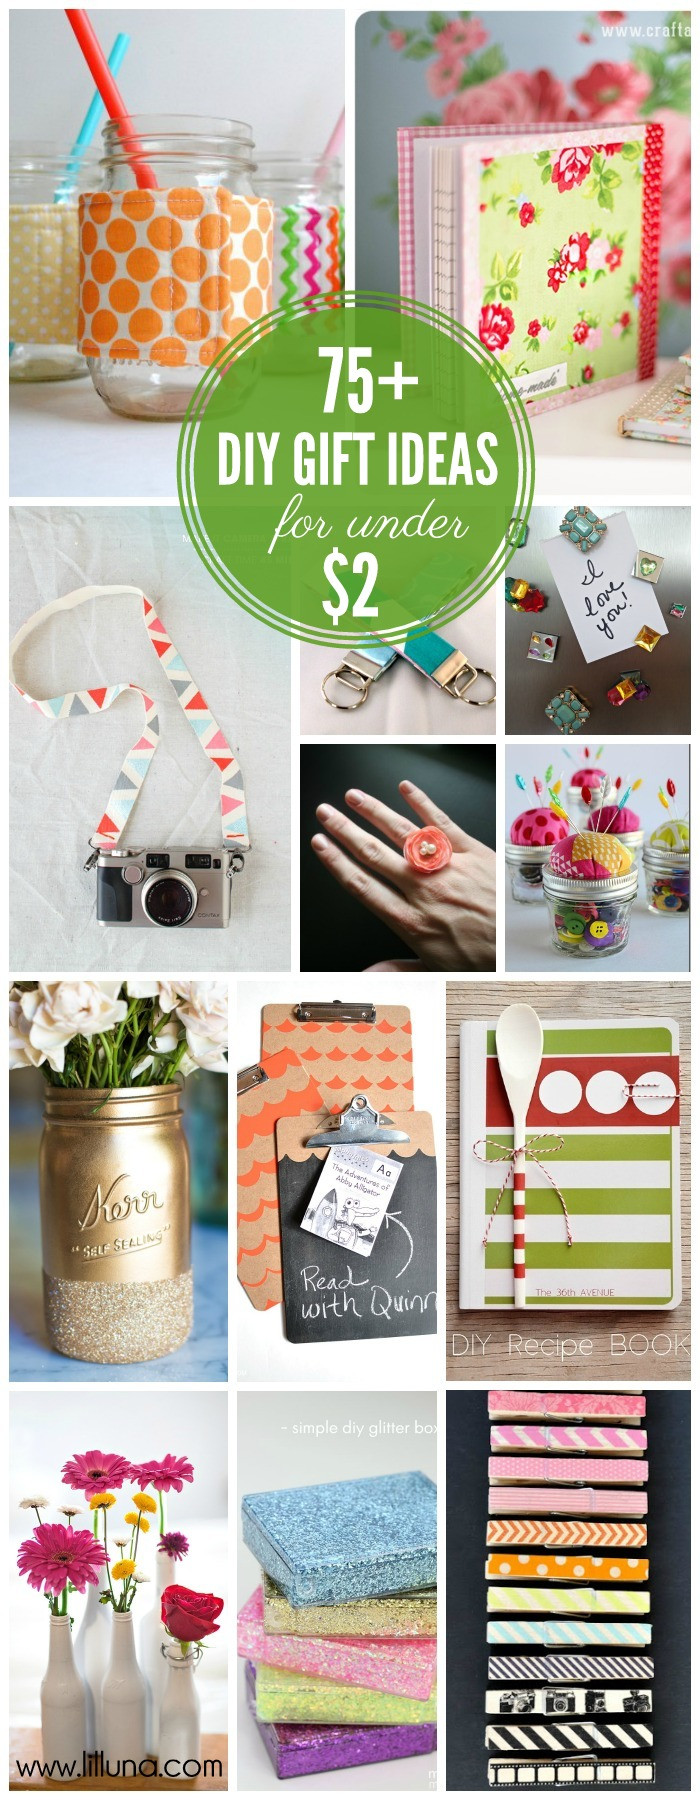 Best ideas about Cheap Holiday Gift Ideas . Save or Pin Inexpensive Gift Ideas Now.